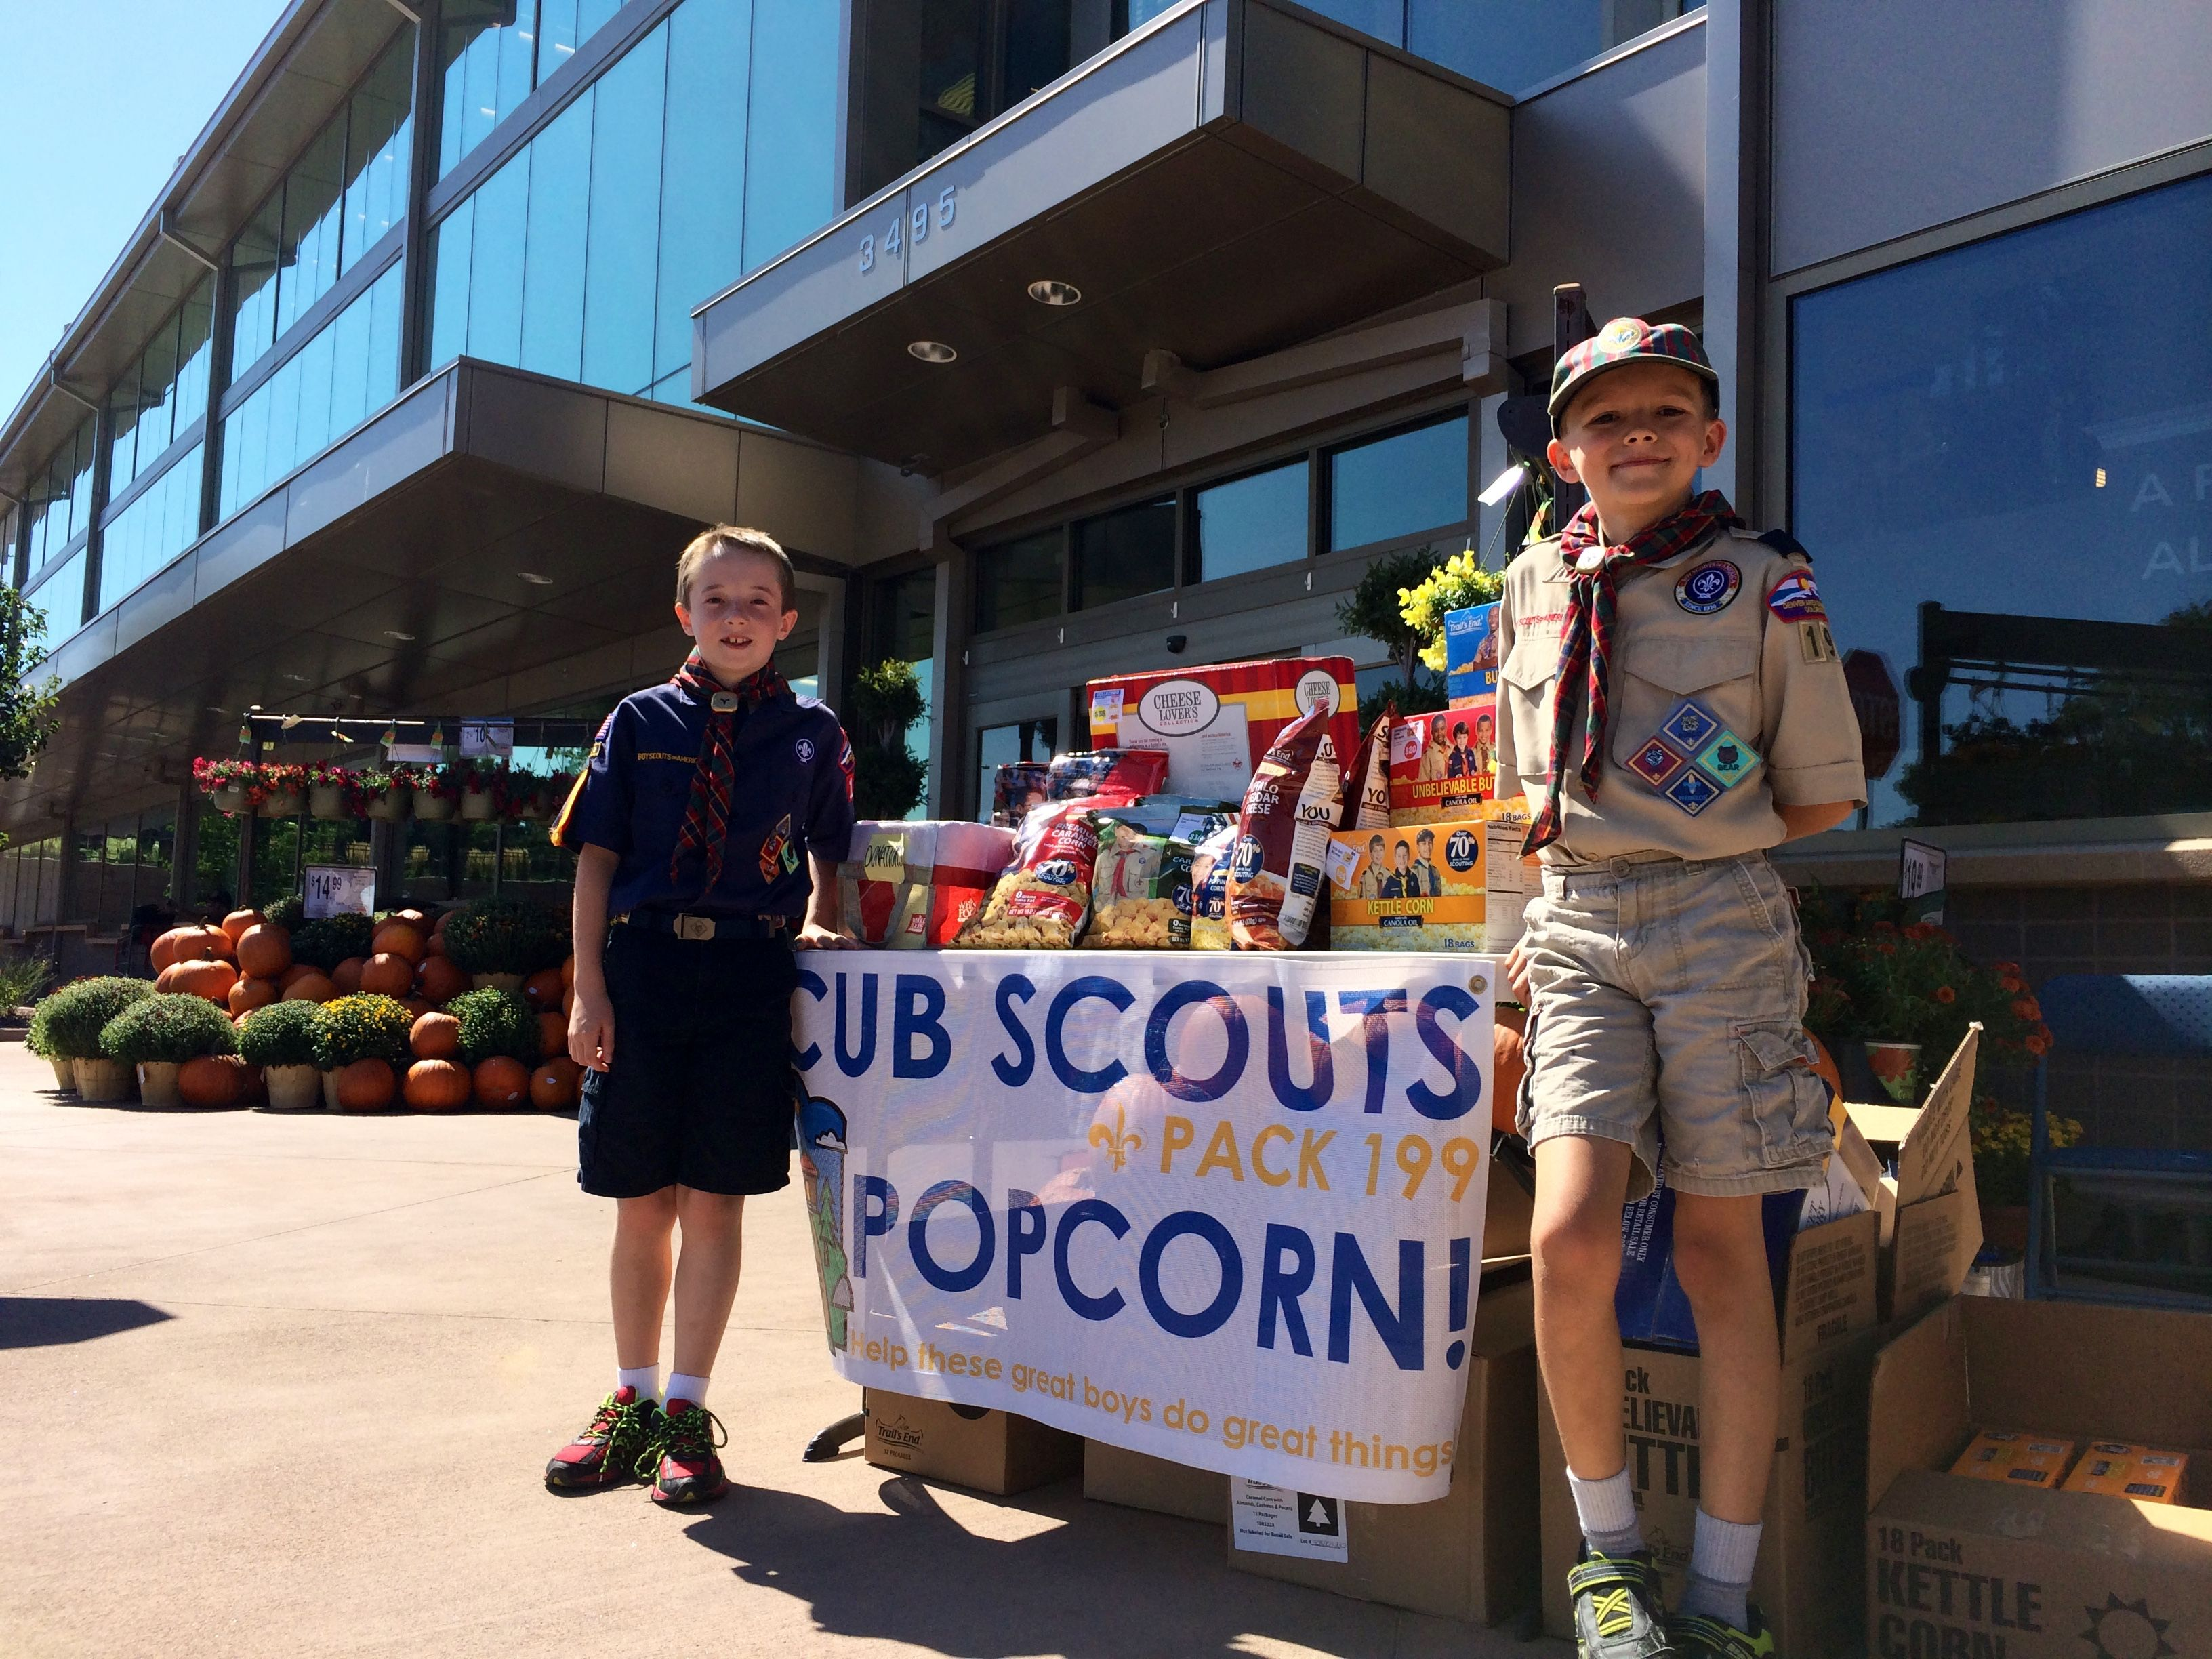 Cub Scouts Popcorn - Booth setup  The banner really helps people